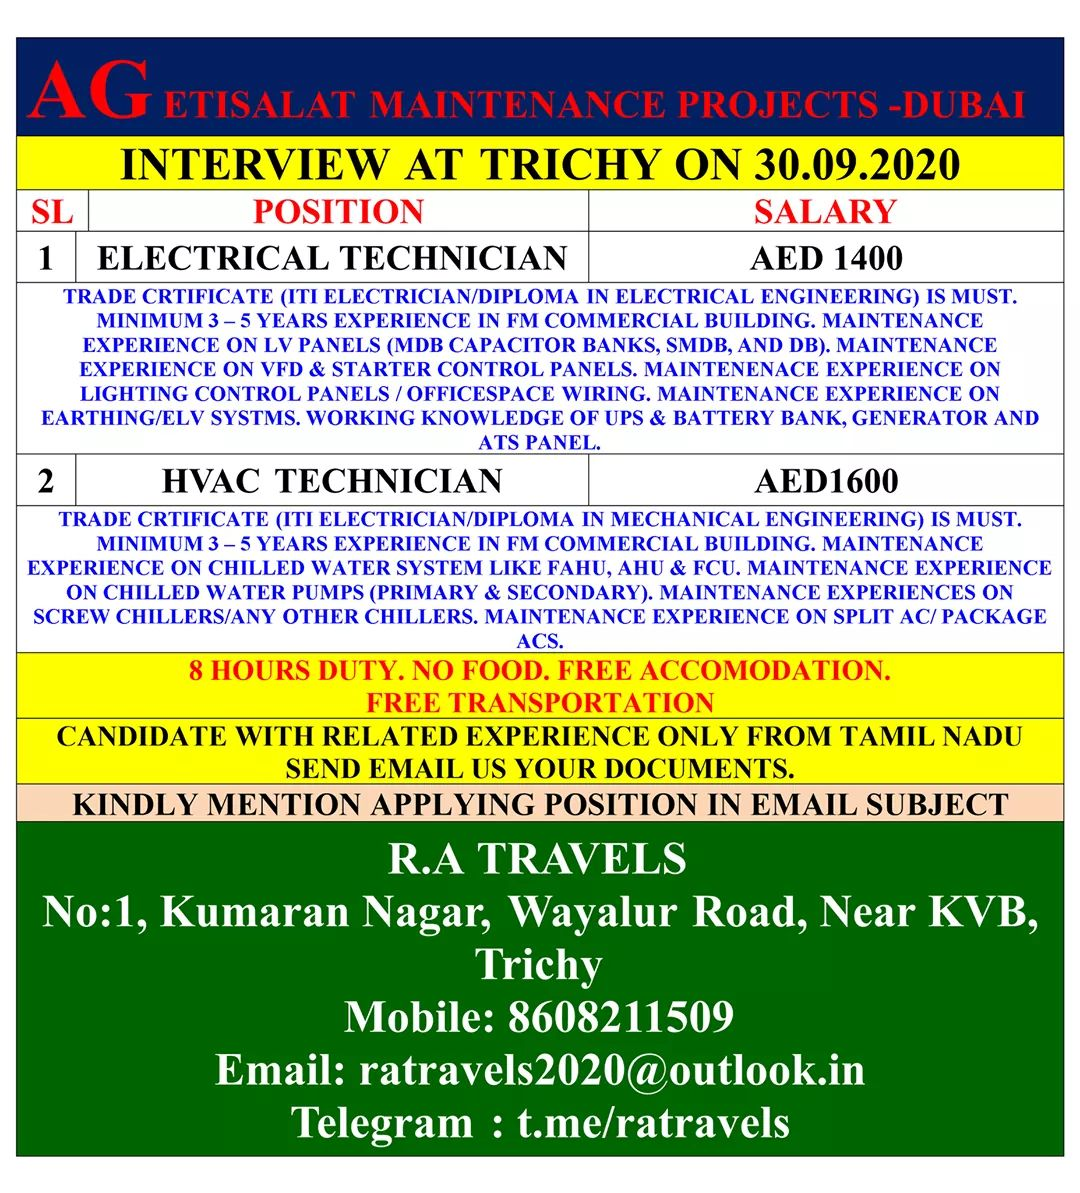 URGENTLY REQUIRED AT DUBAI IN MAINTENANCE PROJECT